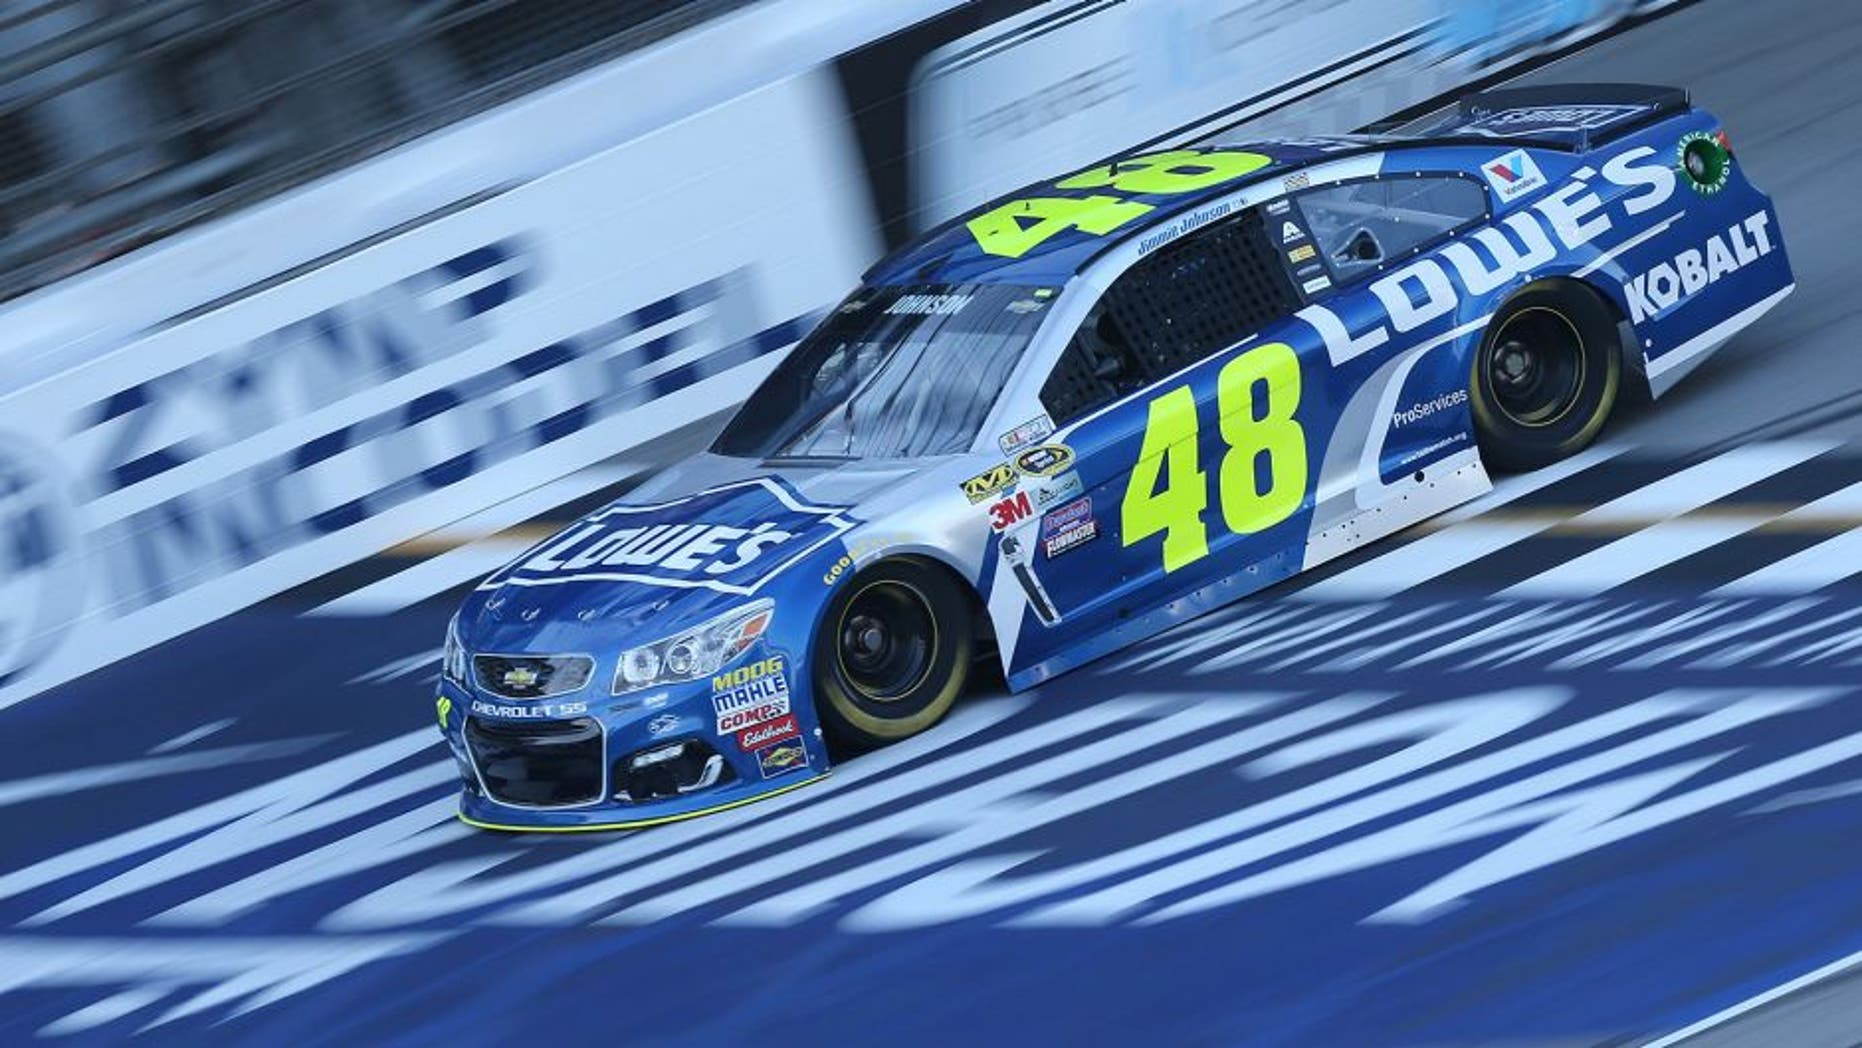 BROOKLYN, MI - AUGUST 26: Jimmie Johnson, driver of the #48 Lowe's Chevrolet, drives during qualifying for the NASCAR Sprint Cup Series Pure Michigan 400 at Michigan International Speedway on August 26, 2016 in Brooklyn, Michigan. (Photo by Jerry Markland/Getty Images)